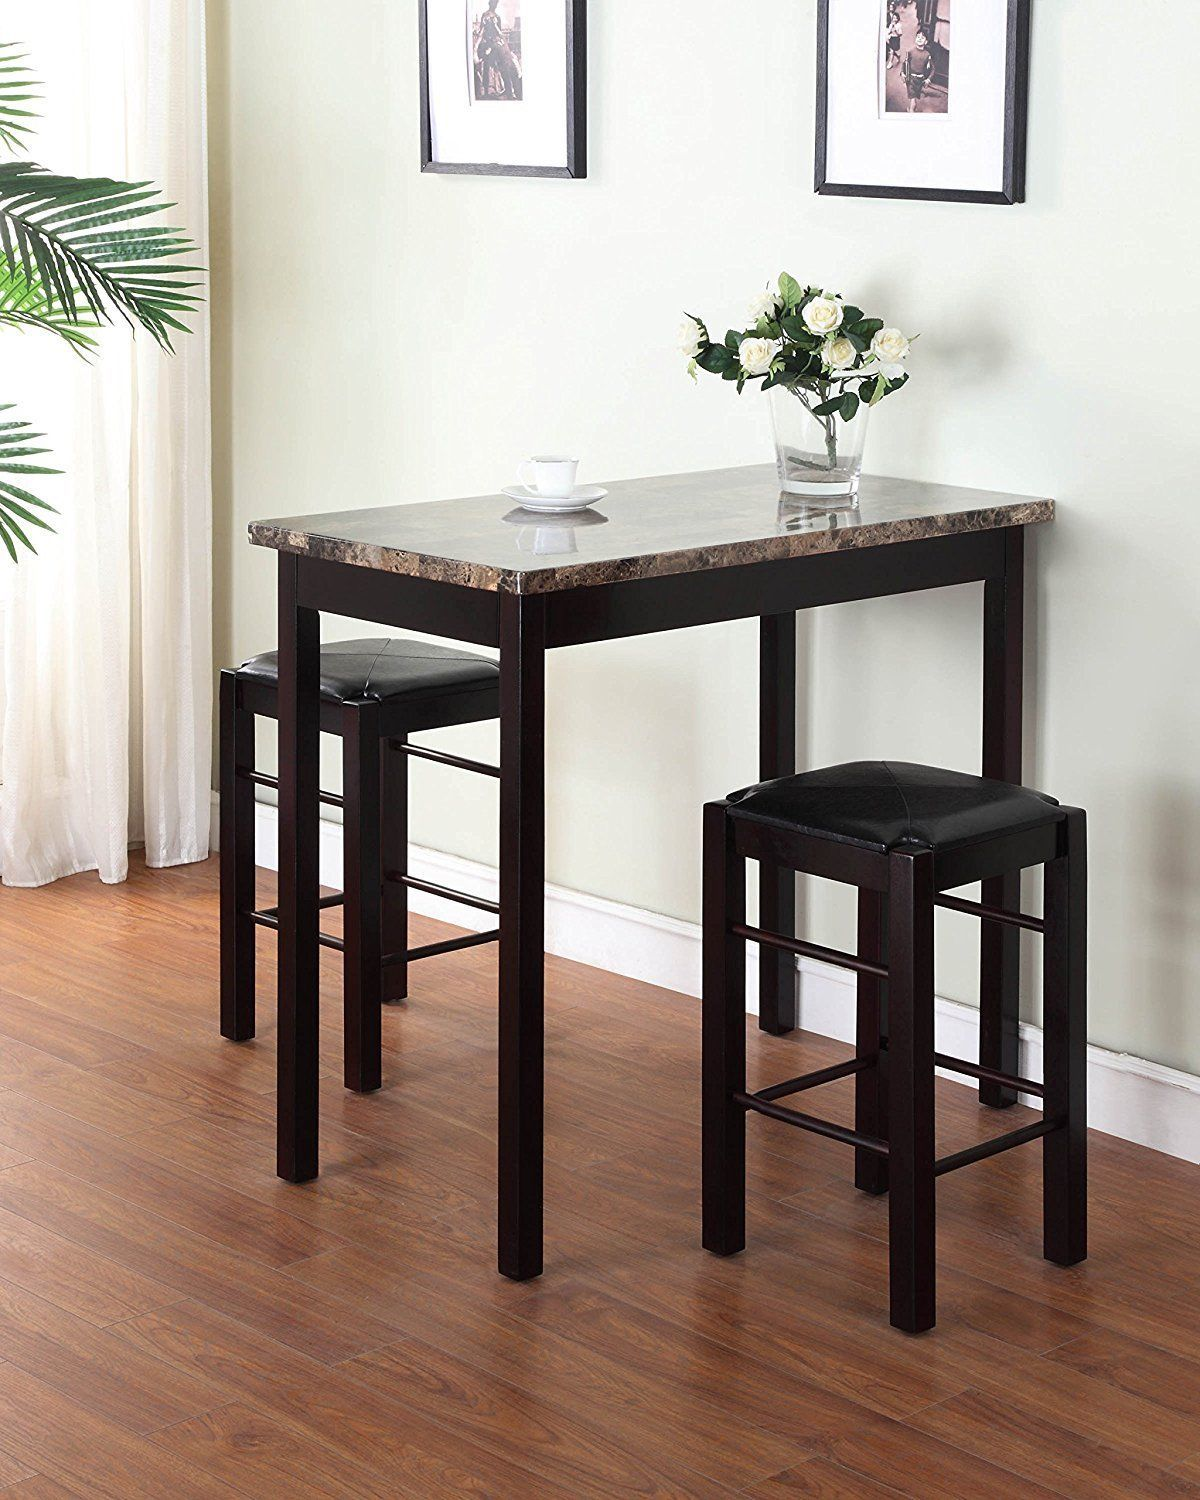 Bar height dining set breakfast with stools 3 piece pub faux marble table nook